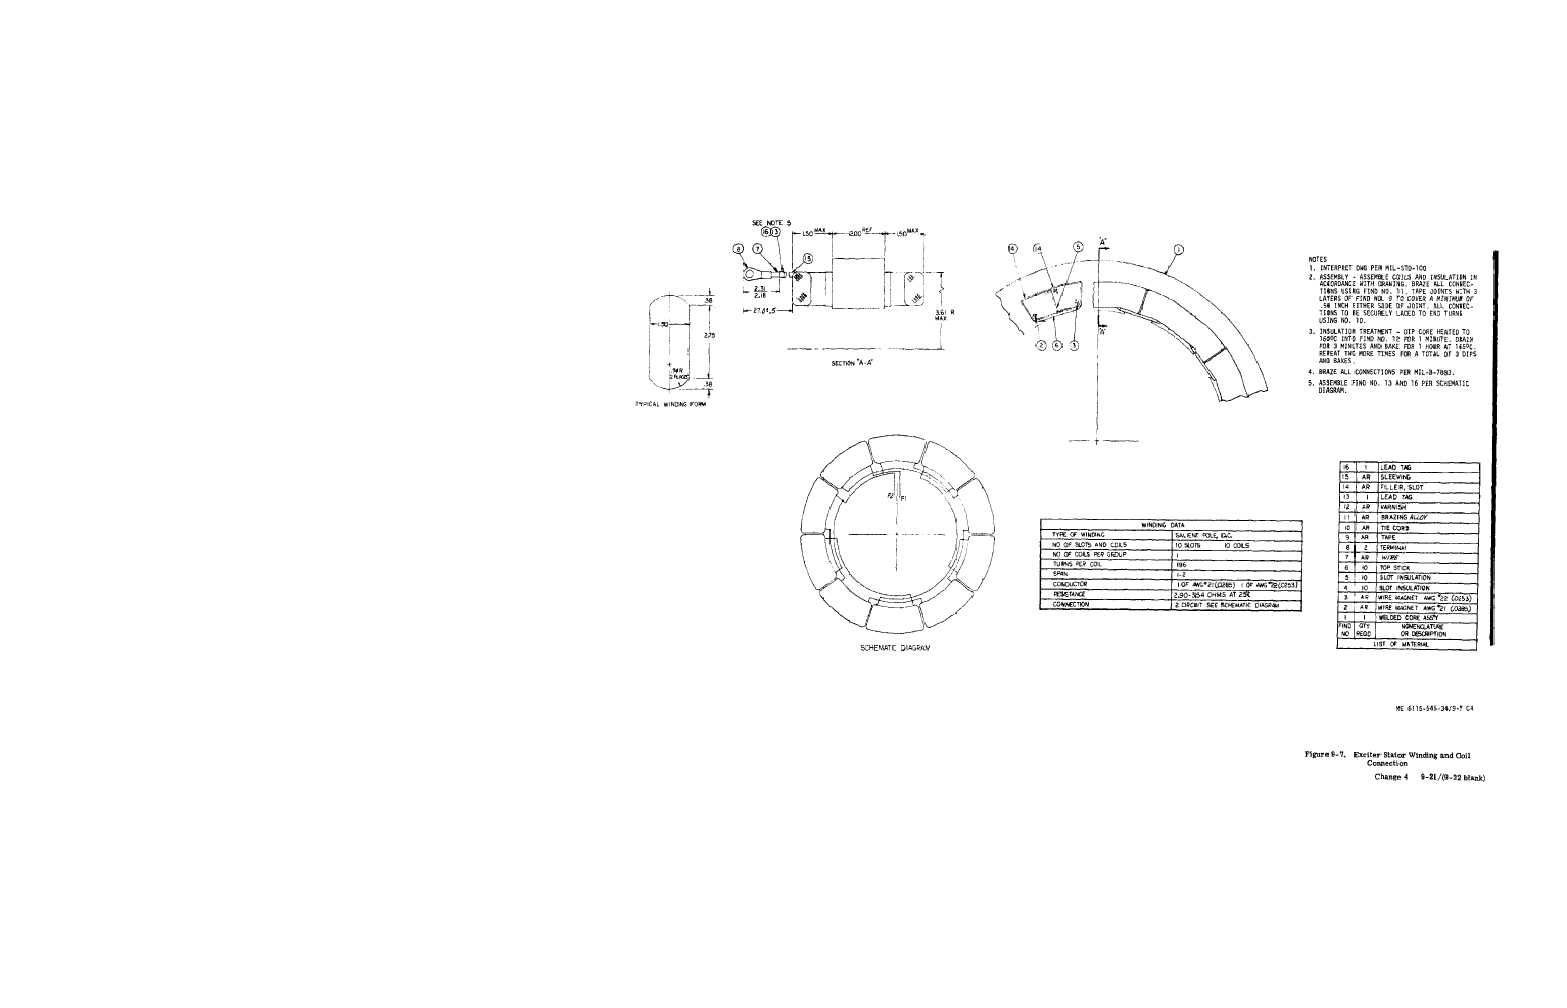 Figure 9 7 Exciter Rotor Winding And Coil Connection 3 Phase 4 Wire Diagram 120 208 Tm 5 6115 545 34 Generator Set Diesel Engine Driven Tactical Skid Mtd 30 Kw 240 416 Volts Manual Page Navigation